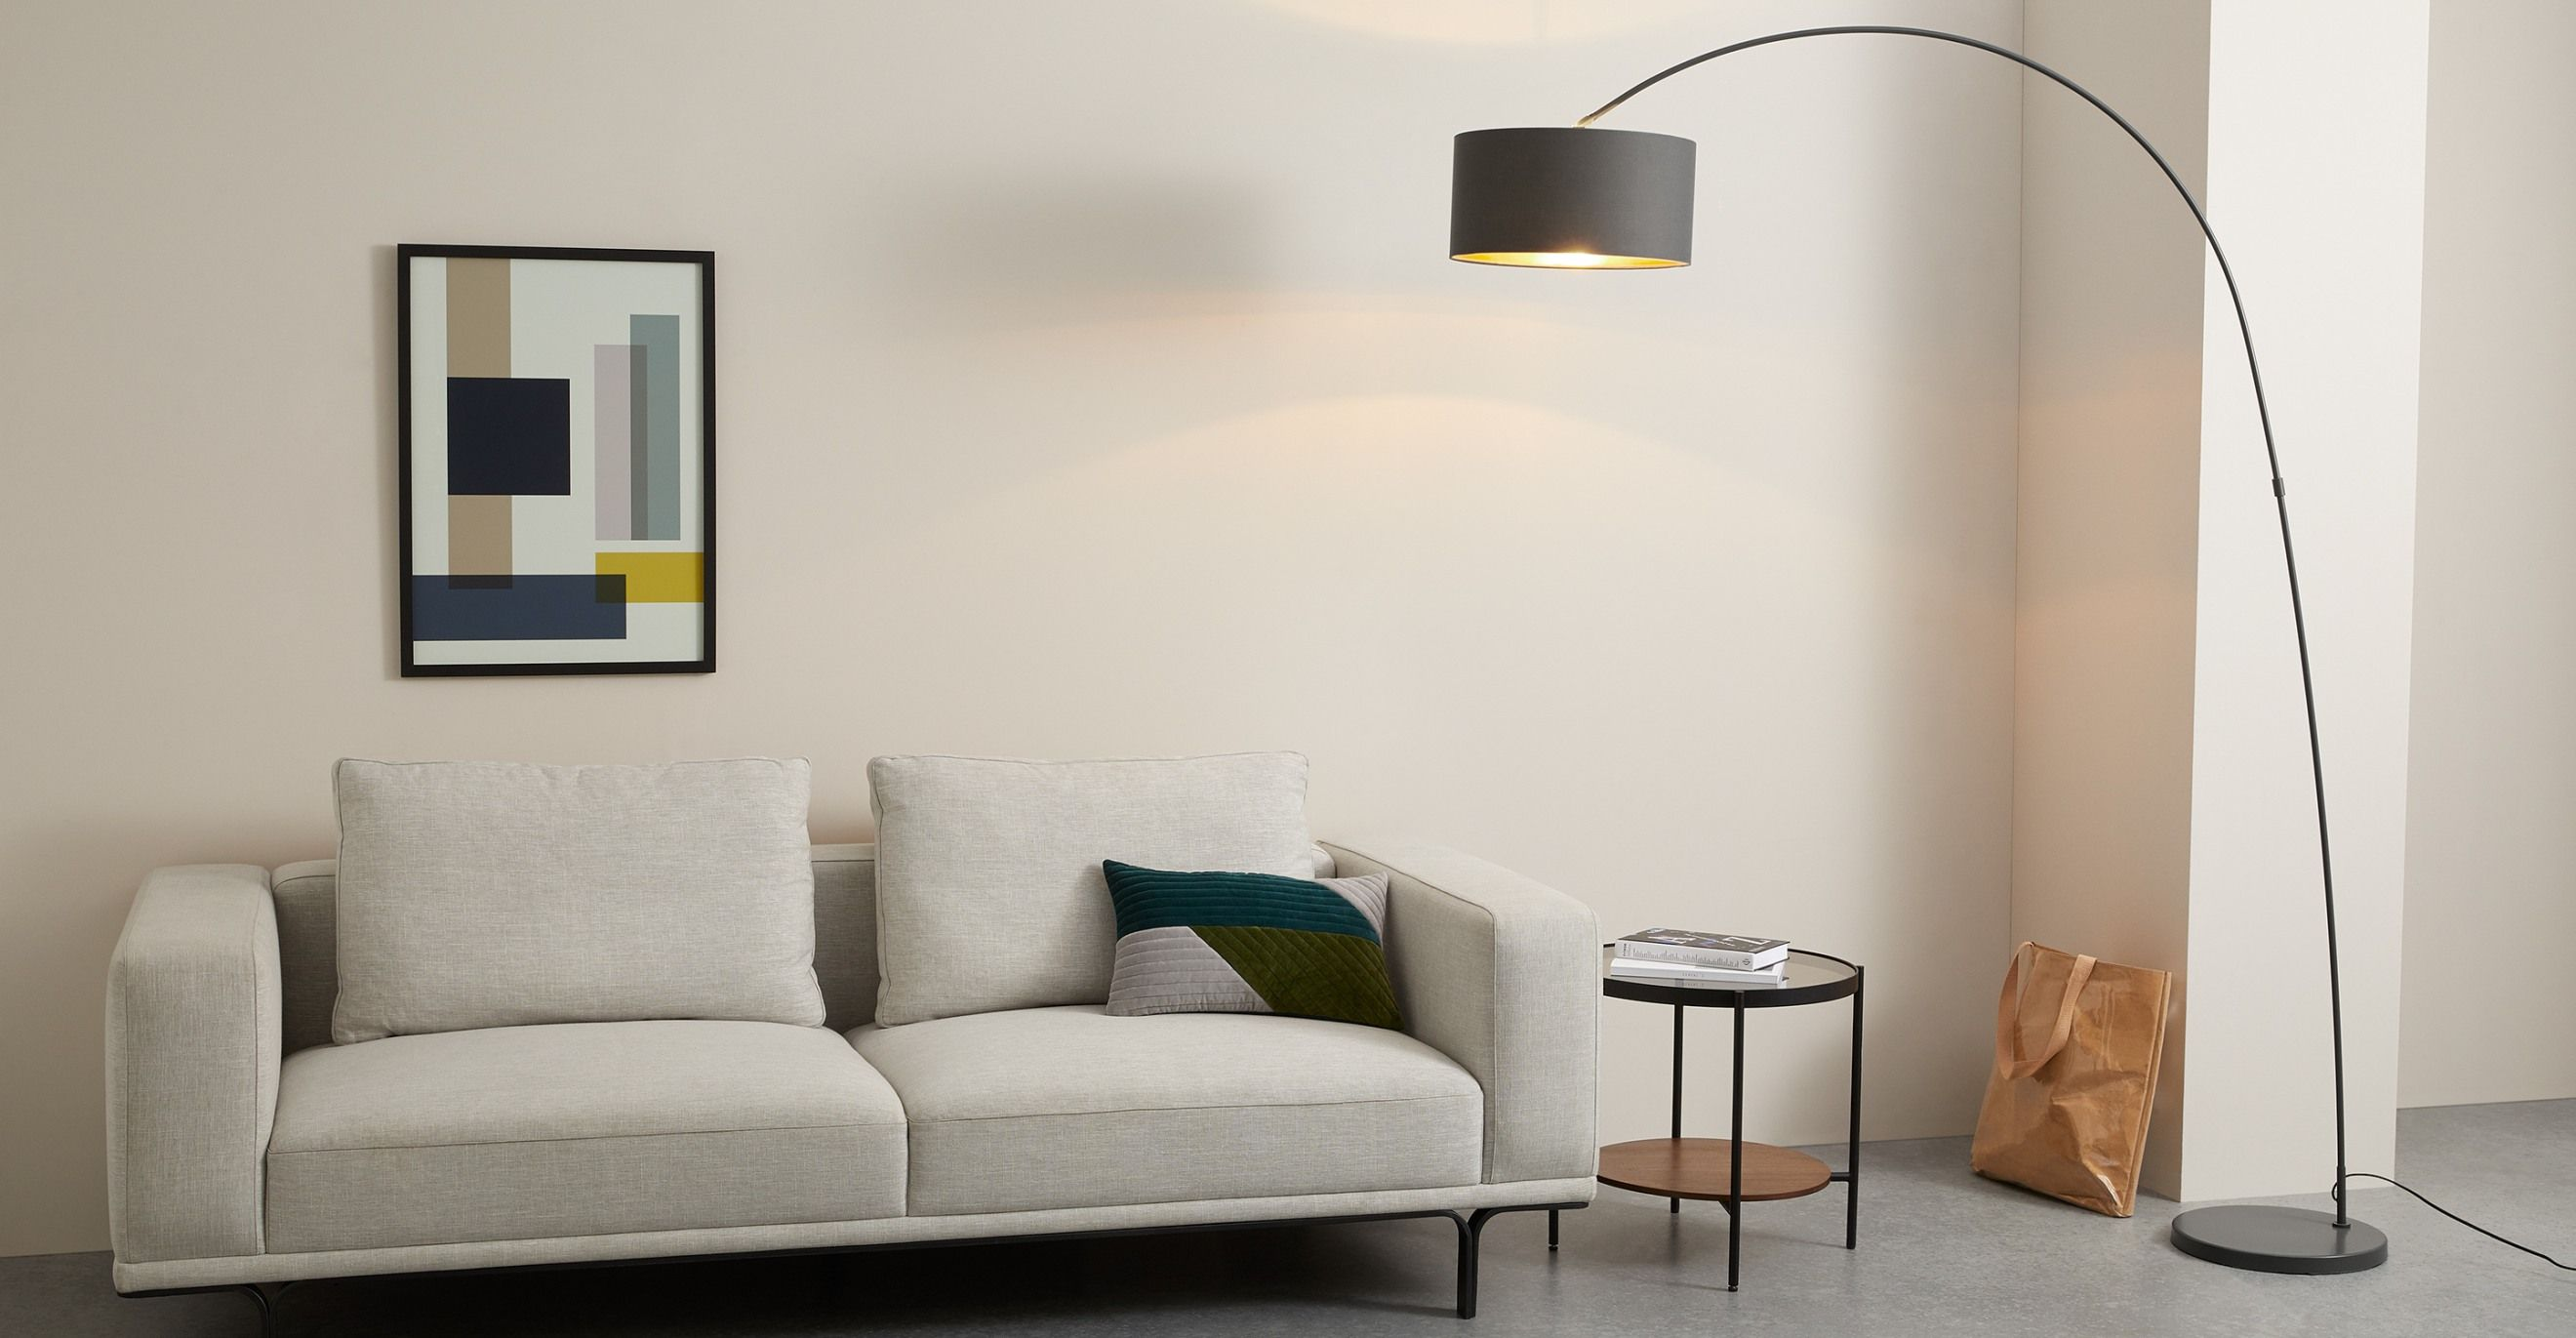 Best floor lamps: Illuminate your space